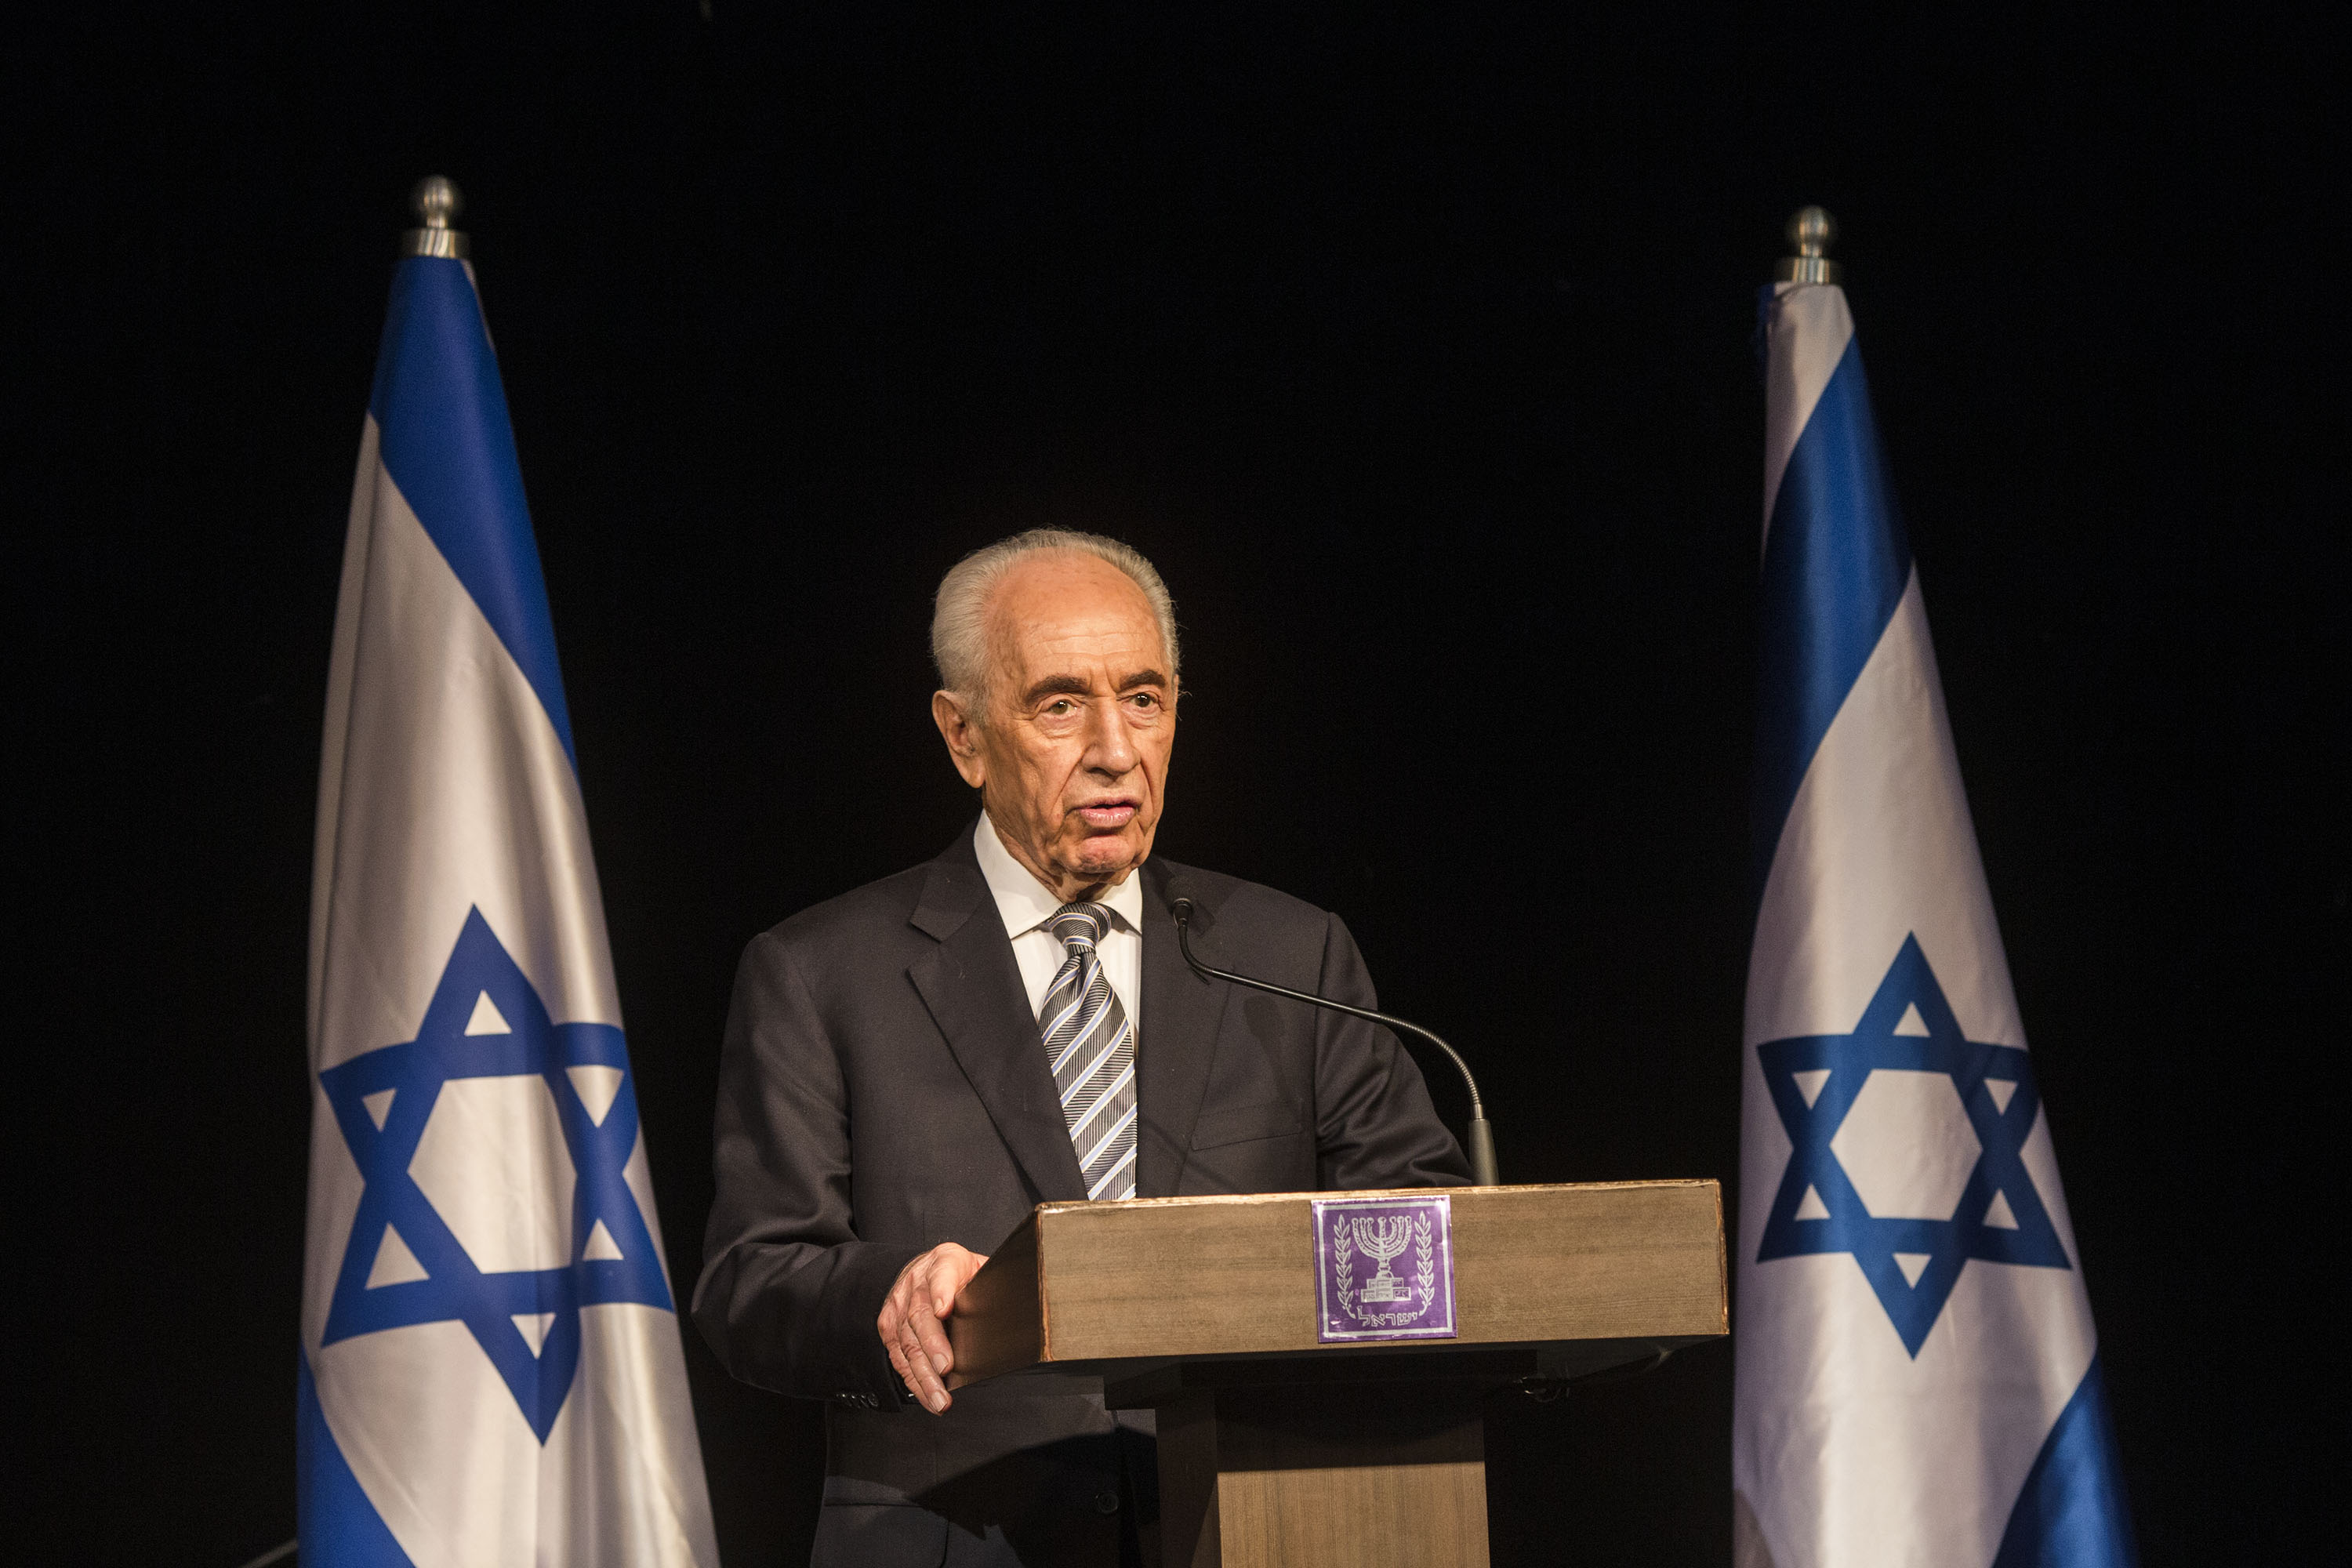 President Shimon Peres speaks during a press conference for foreign media in Sderot, Israel, on July 6, 2014.